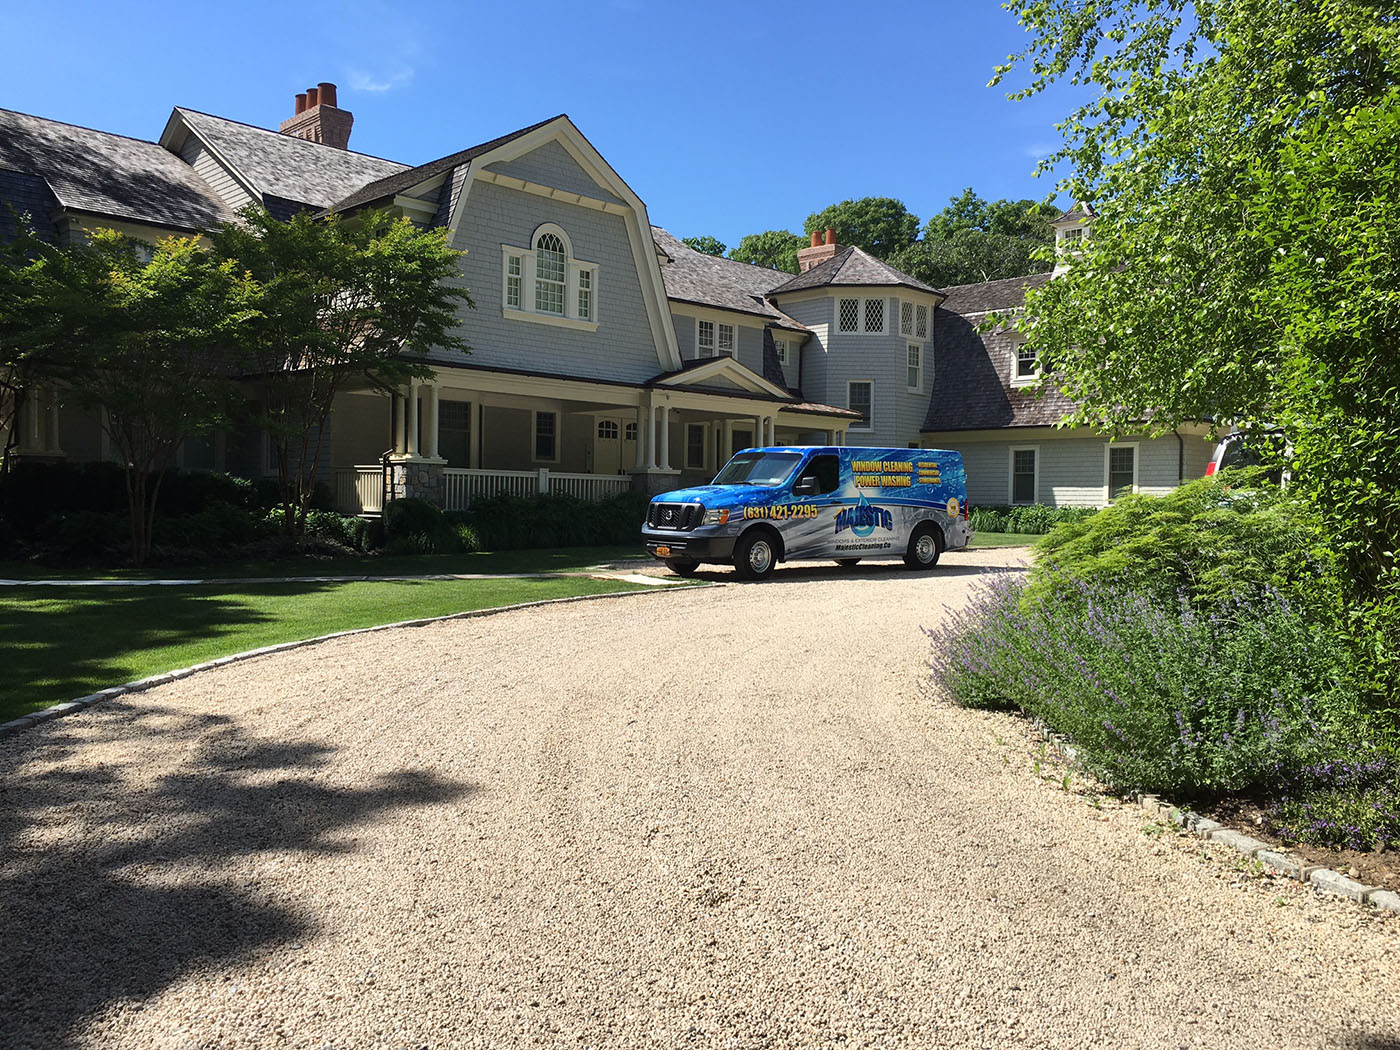 Windows cleaning in Dix Hills, Brookville, Muttontown and Huntington